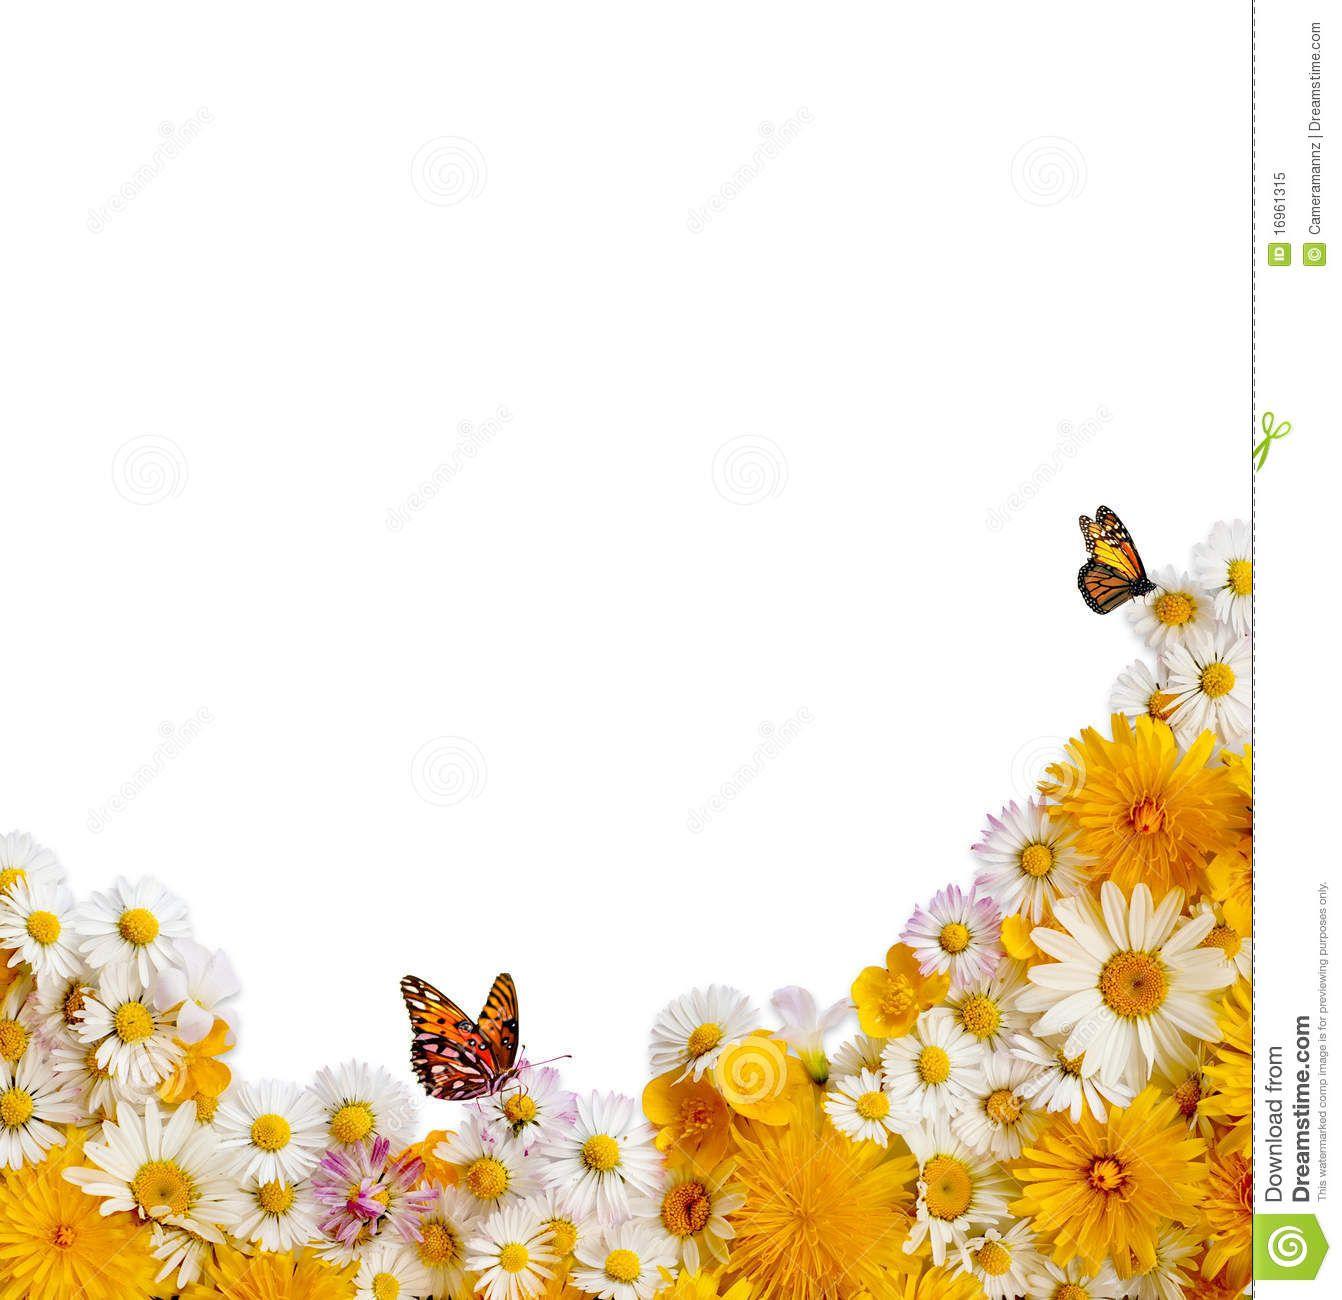 flower borders images free.